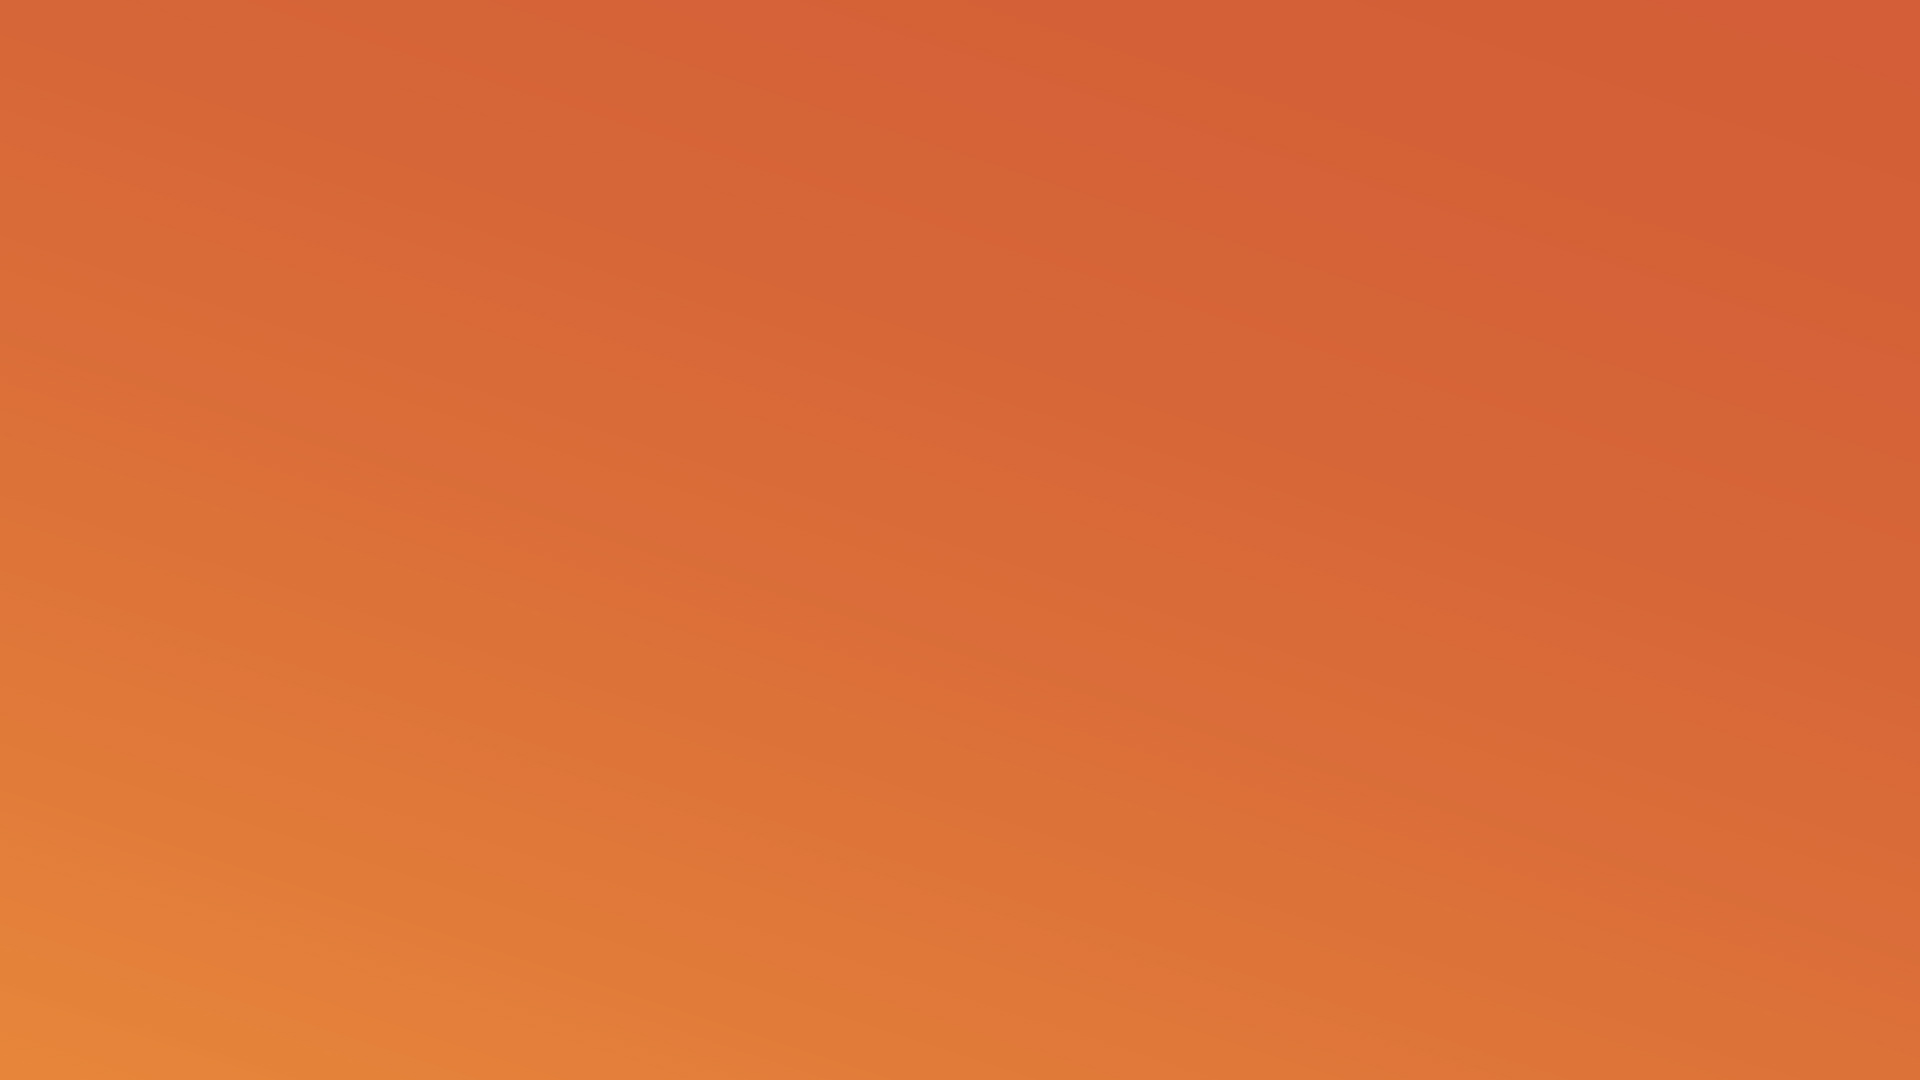 Gradient Orange Color Image